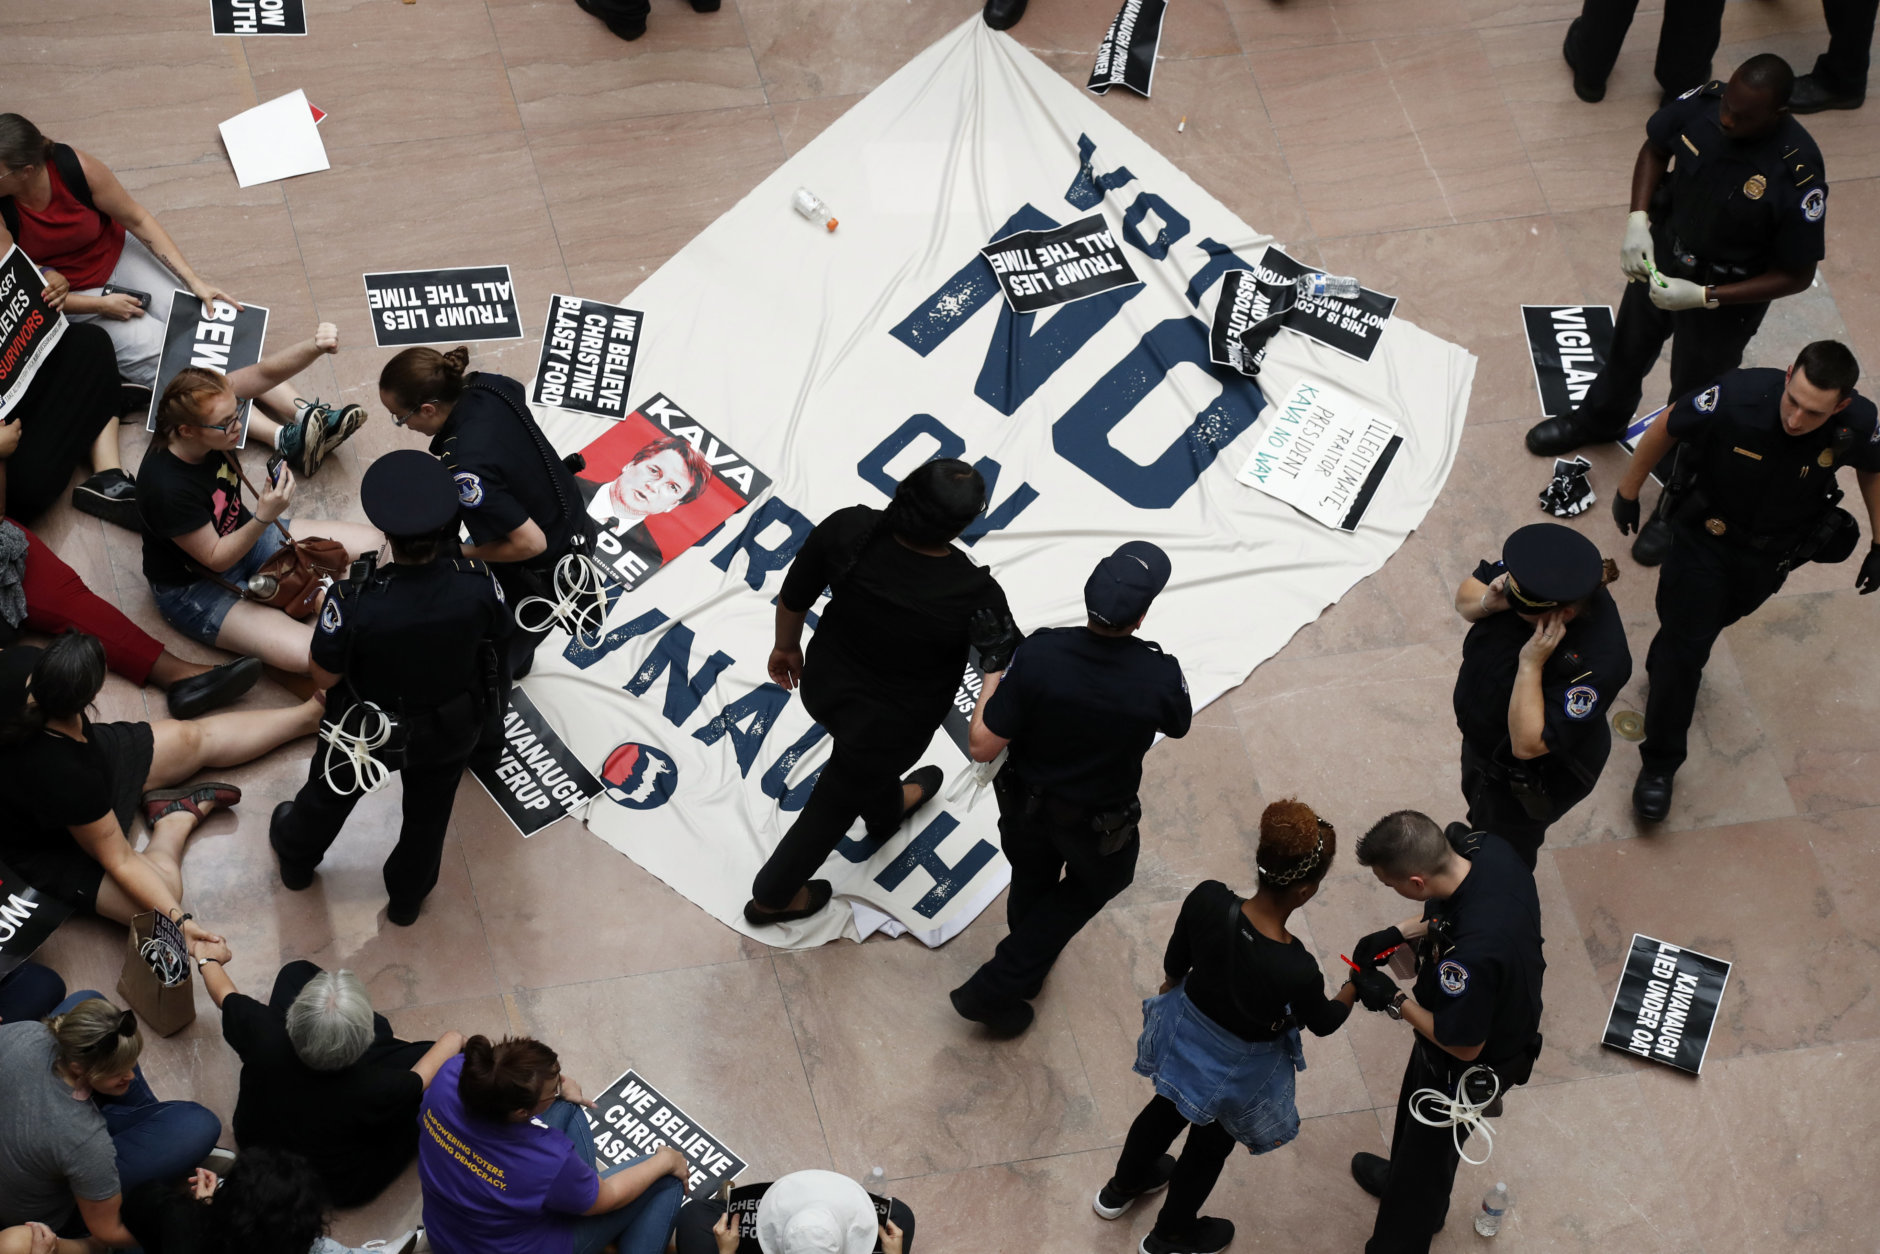 Protesters against Supreme court nominee Brett Kavanaugh are arrested by Capitol Hill Police in the atrium of the Hart Senate Office Building on Capitol Hill, Thursday, Oct. 4, 2018 in Washington. (AP Photo/Alex Brandon)